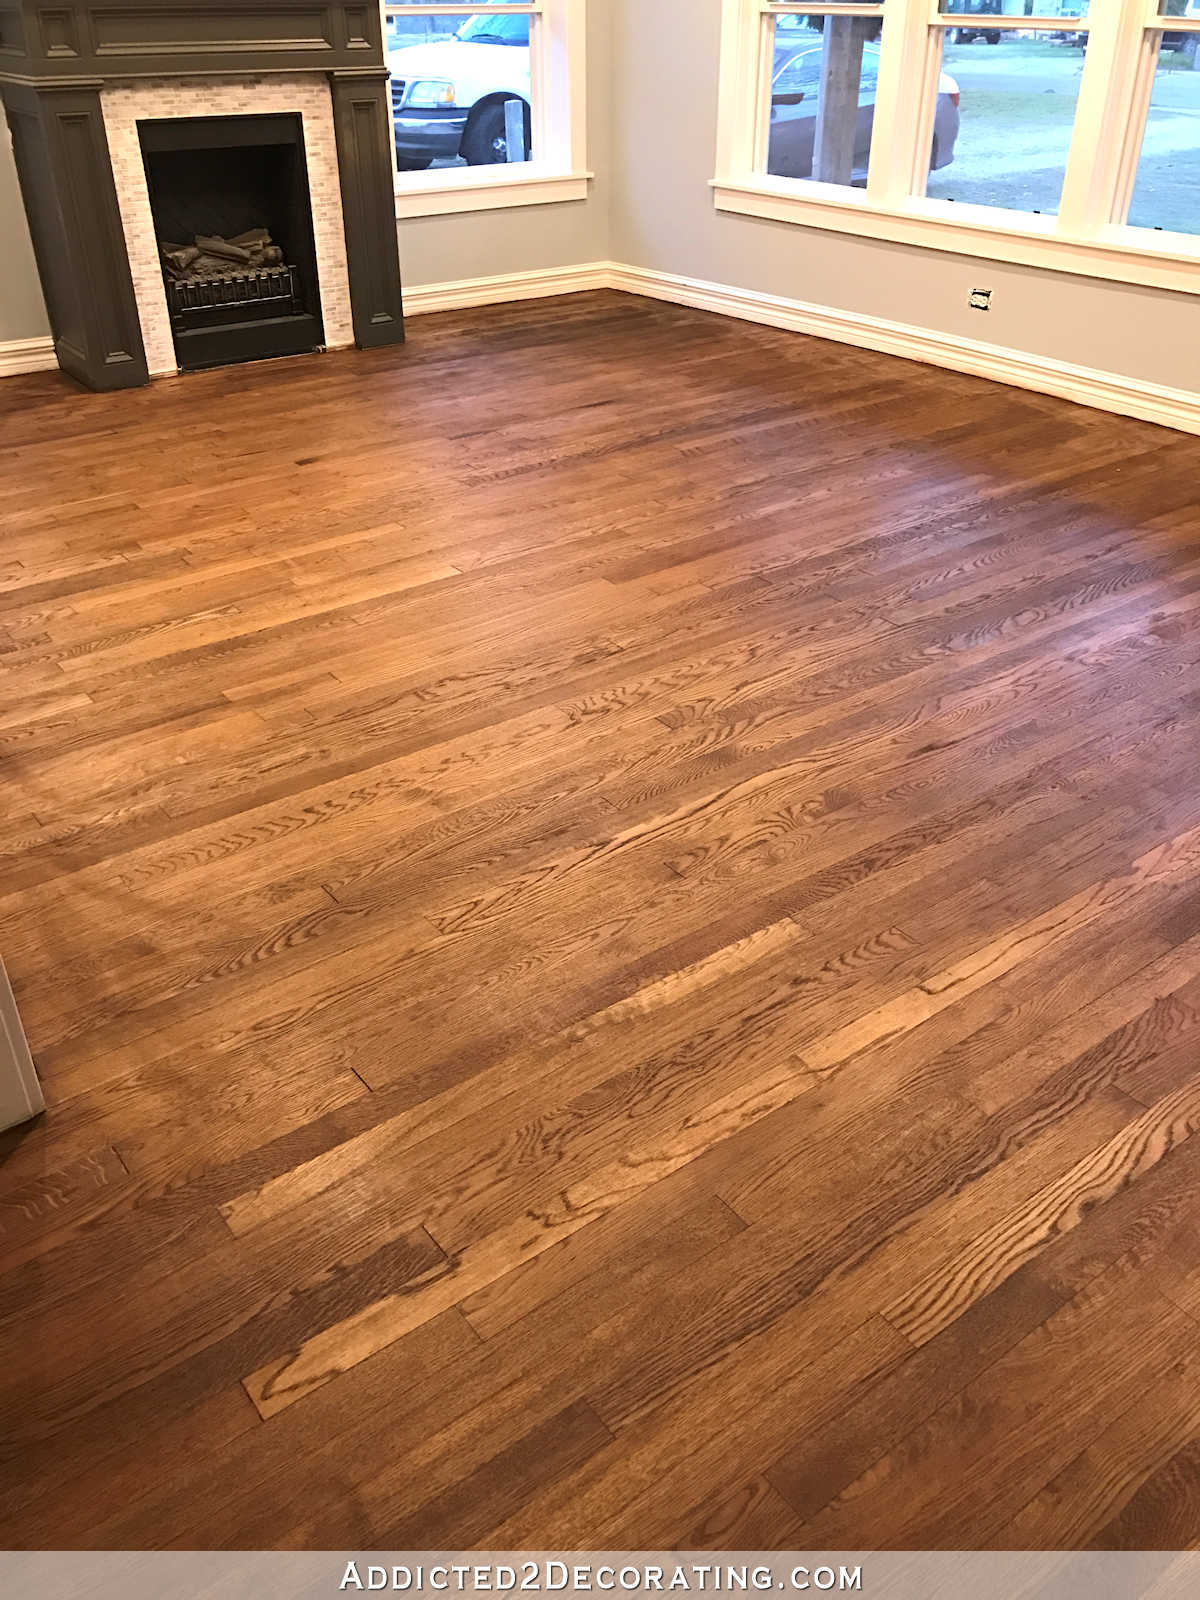 oak wood floor living room window treatment ideas for formal my newly refinished red hardwood floors addicted 2 decorating staining 8a and entryway